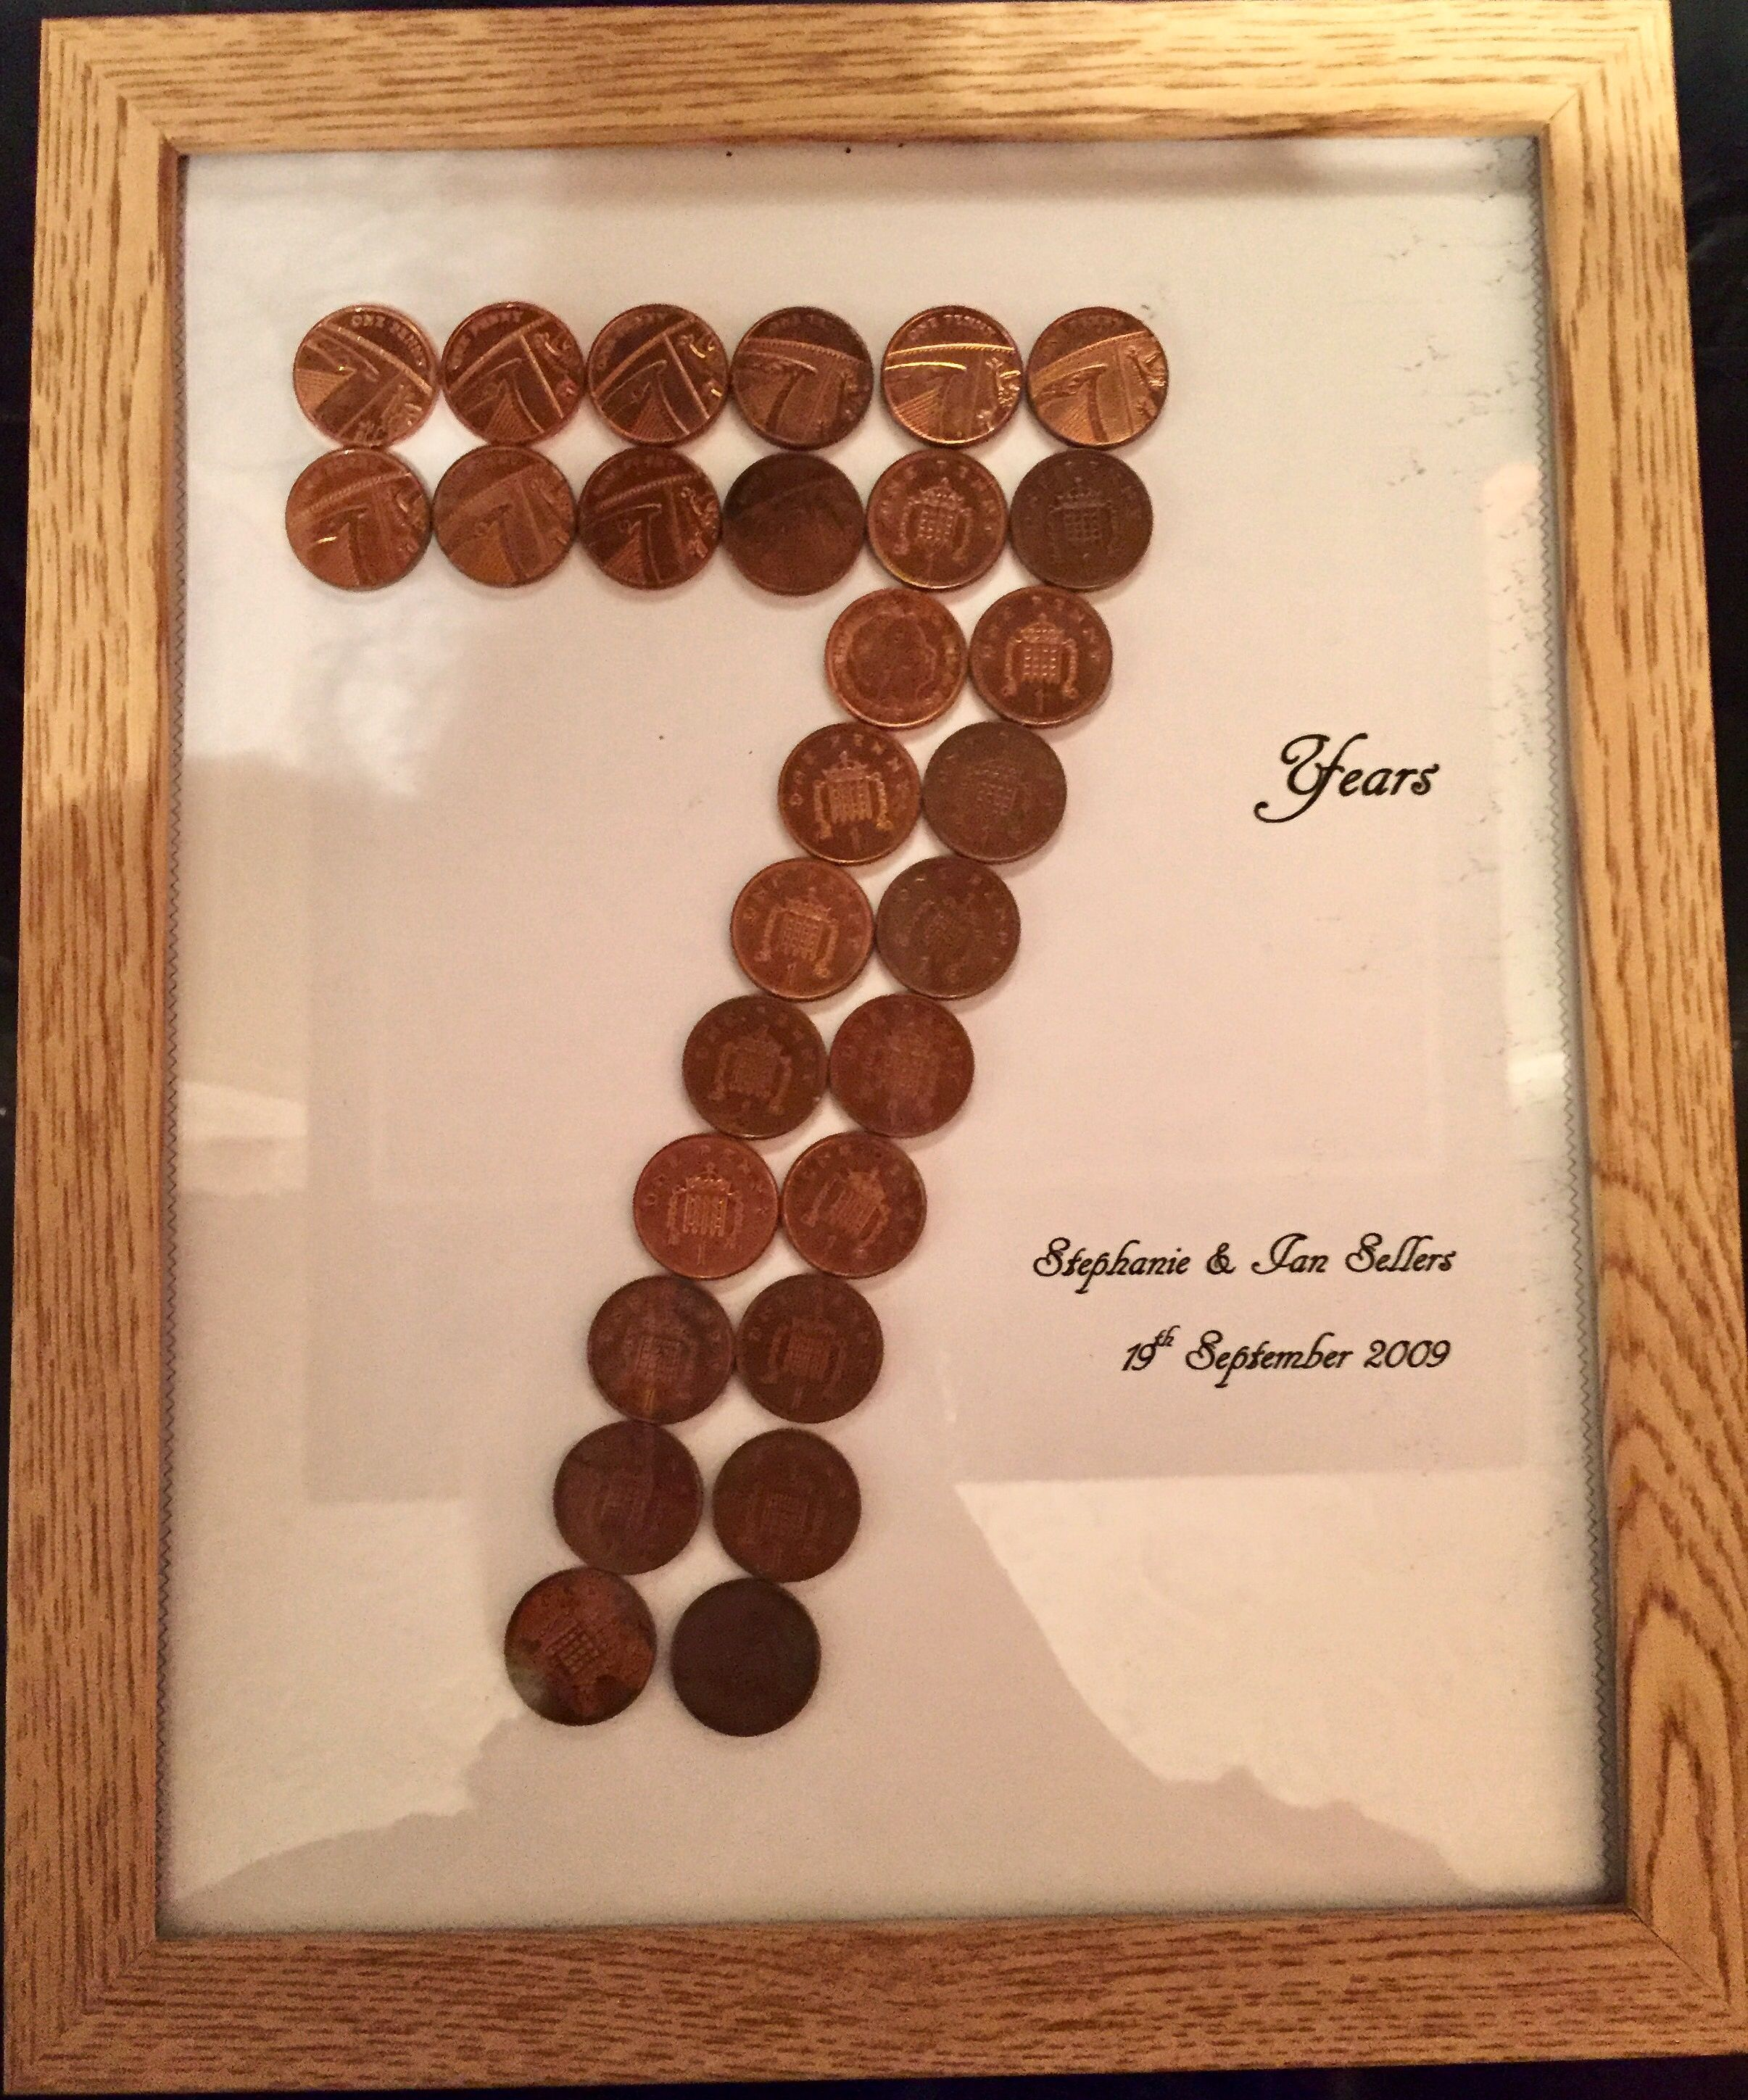 7th Wedding Anniversary Copper Gift